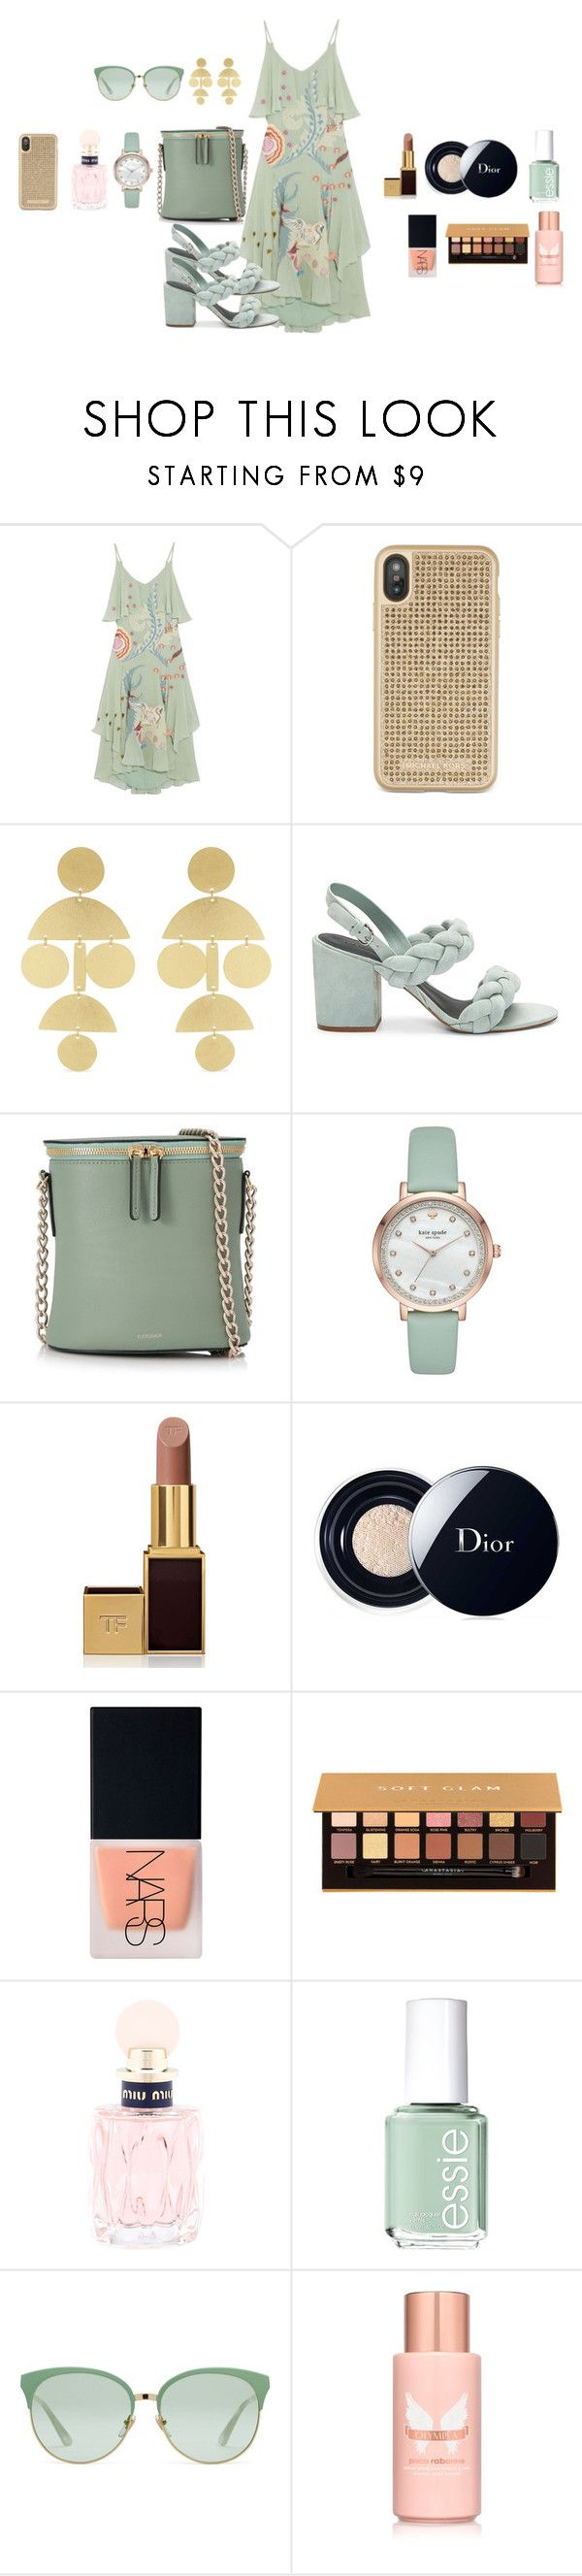 """""""#0624#"""" by uchi7 ❤ liked on Polyvore featuring Temperley London, Michael Kors, Annie Costello Brown, Rebecca Minkoff, Cuero&Mør, Kate Spade, Tom Ford, Christian Dior, NARS Cosmetics and Anastasia Beverly Hills"""